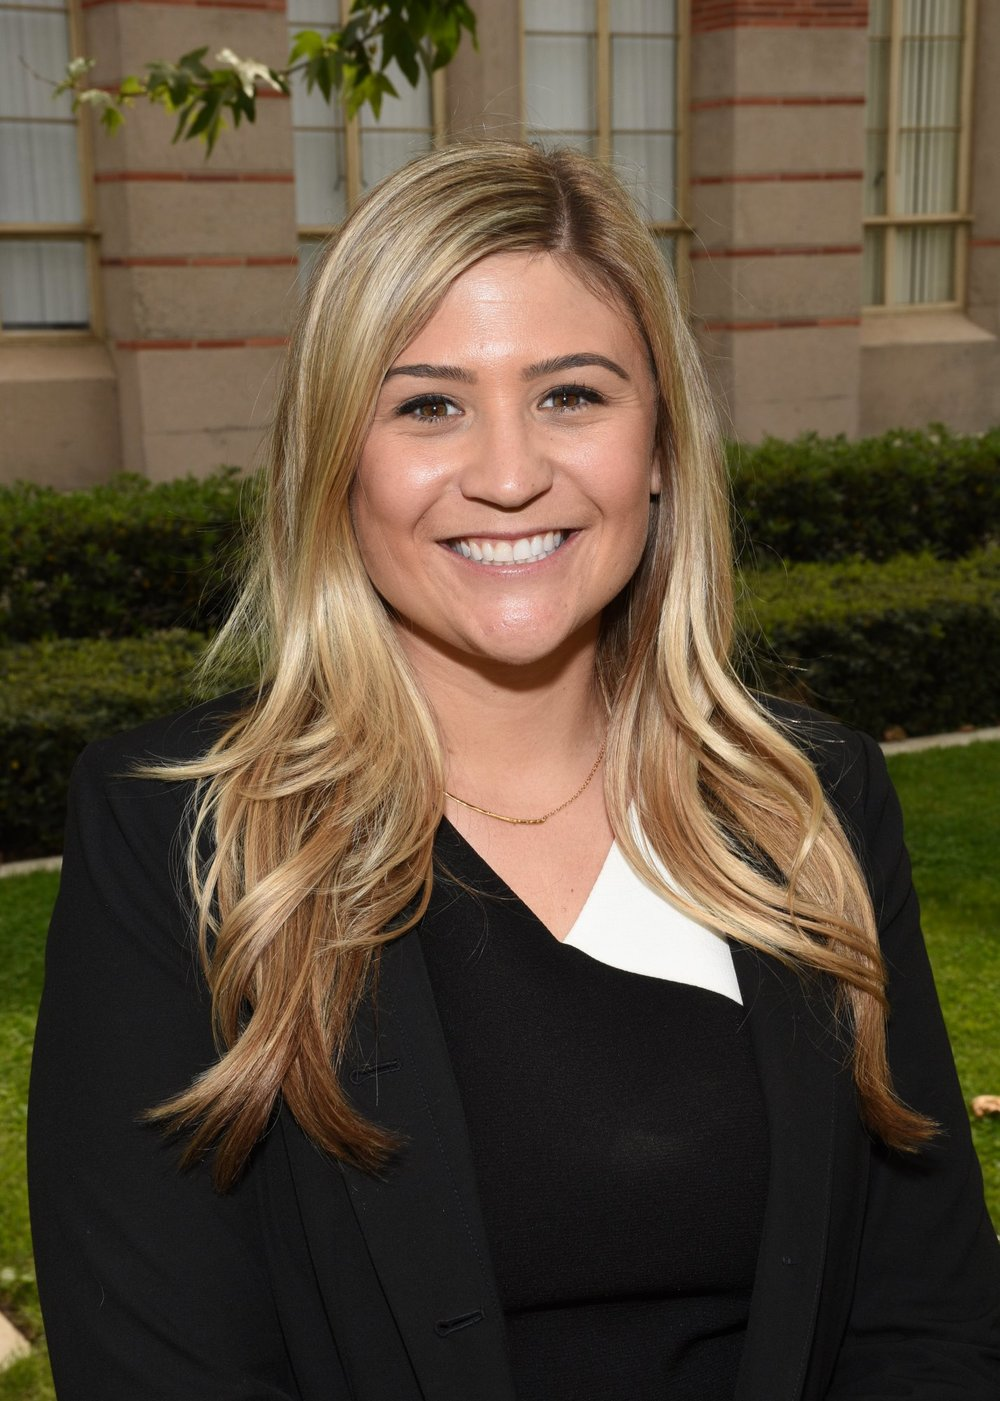 Lindsey Beck - after graduating from UCLA now works with Athletes to Careers, where she helps athletes at all levels find jobs catered to their passions and skills. Beck has combined her job and love for sports to help athletes find themselves in their transition for life after sports.